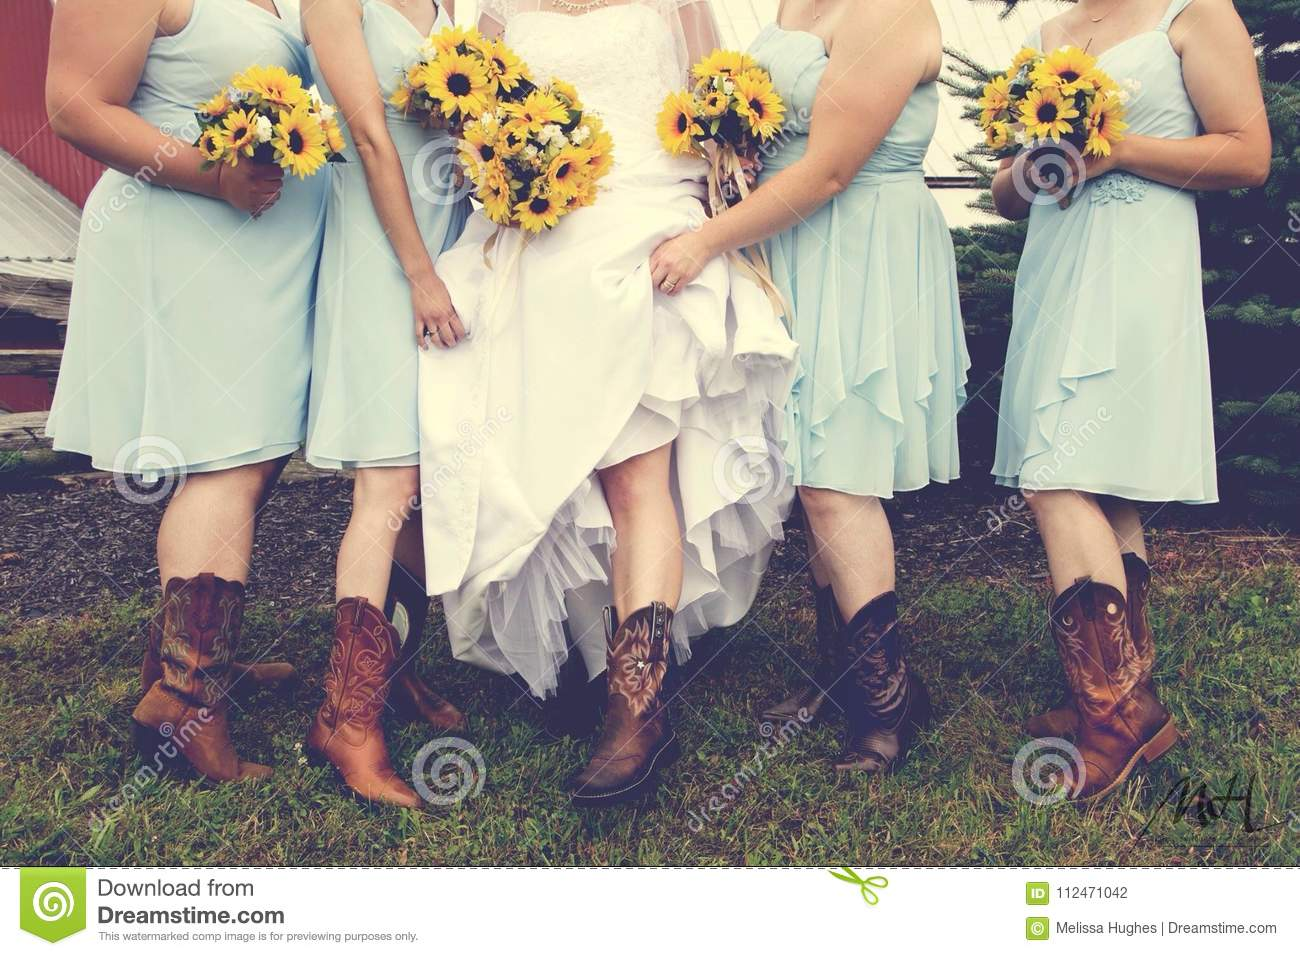 Cowgirl Wedding And Sunflower Bouquets Stock Photo Image Of